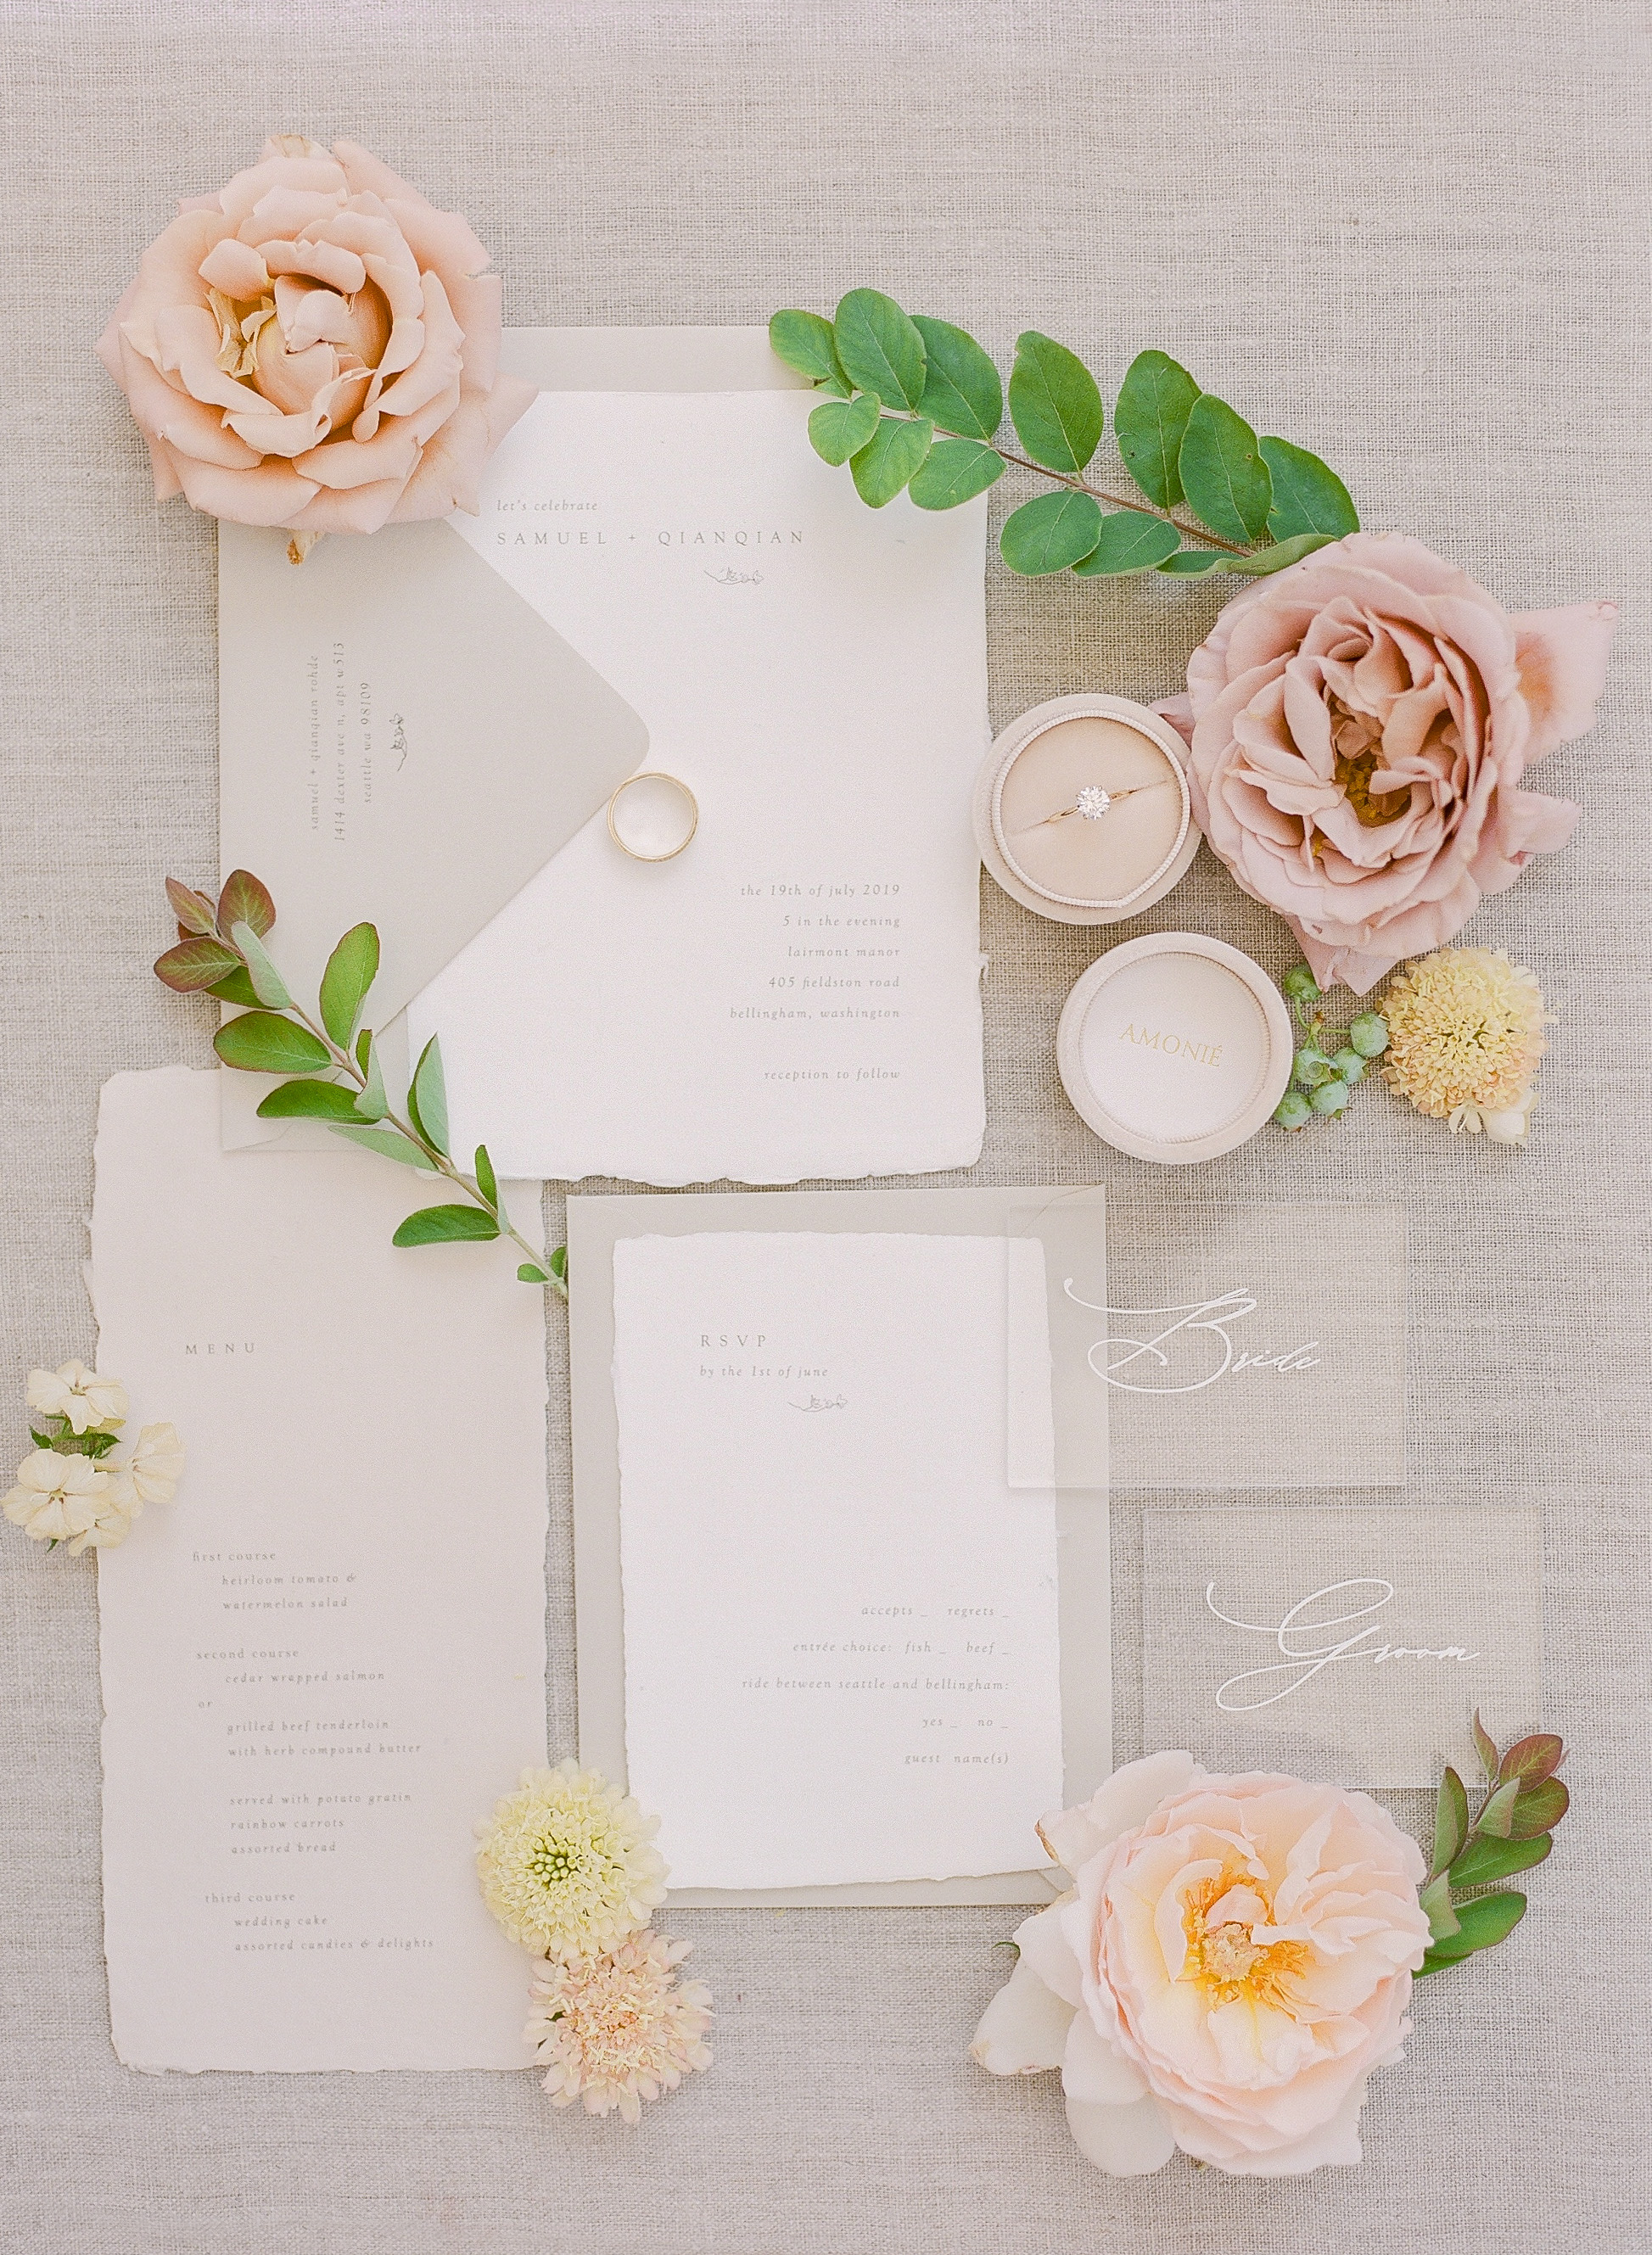 evelyn sam wedding invitations